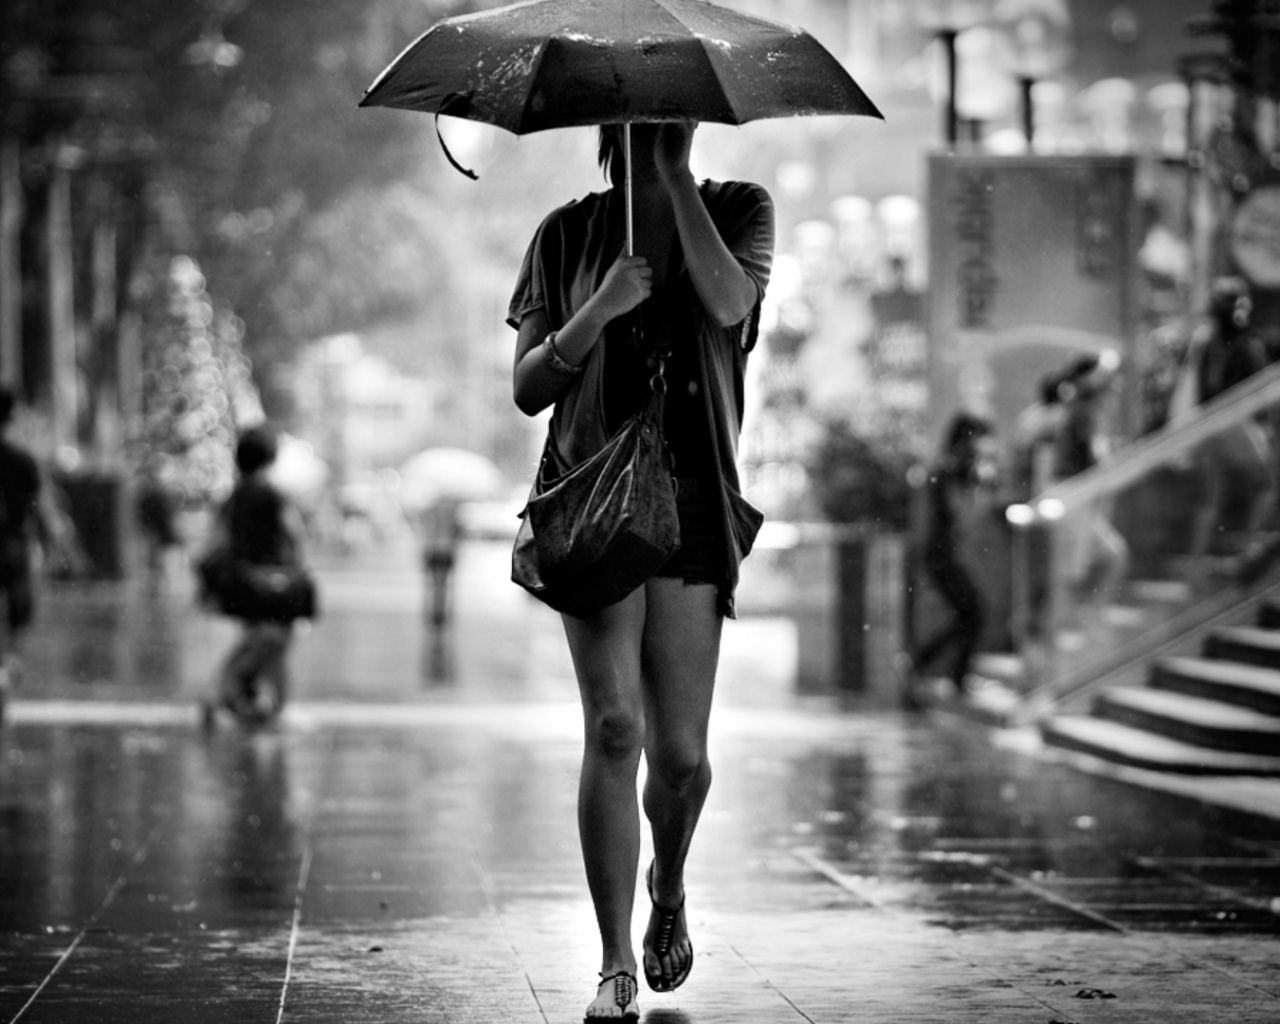 Man Woman Umbrella Woman-umbrella-rain-street